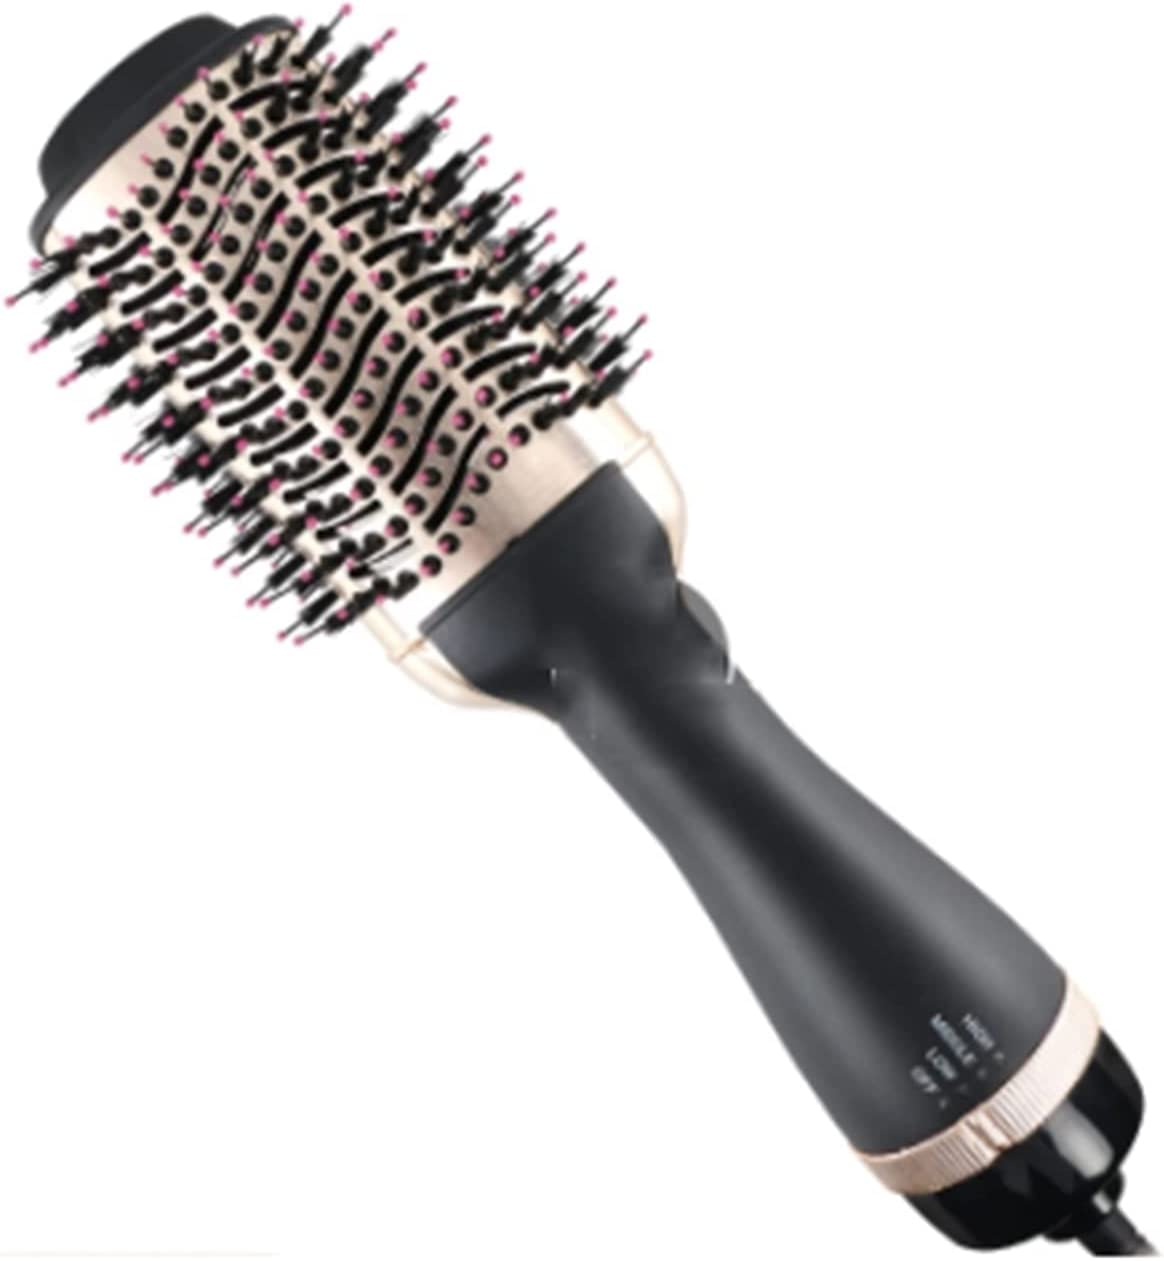 AWSXDC New mail order Professional Gold Today's only One Step Brush Multifunction Dryer Hair